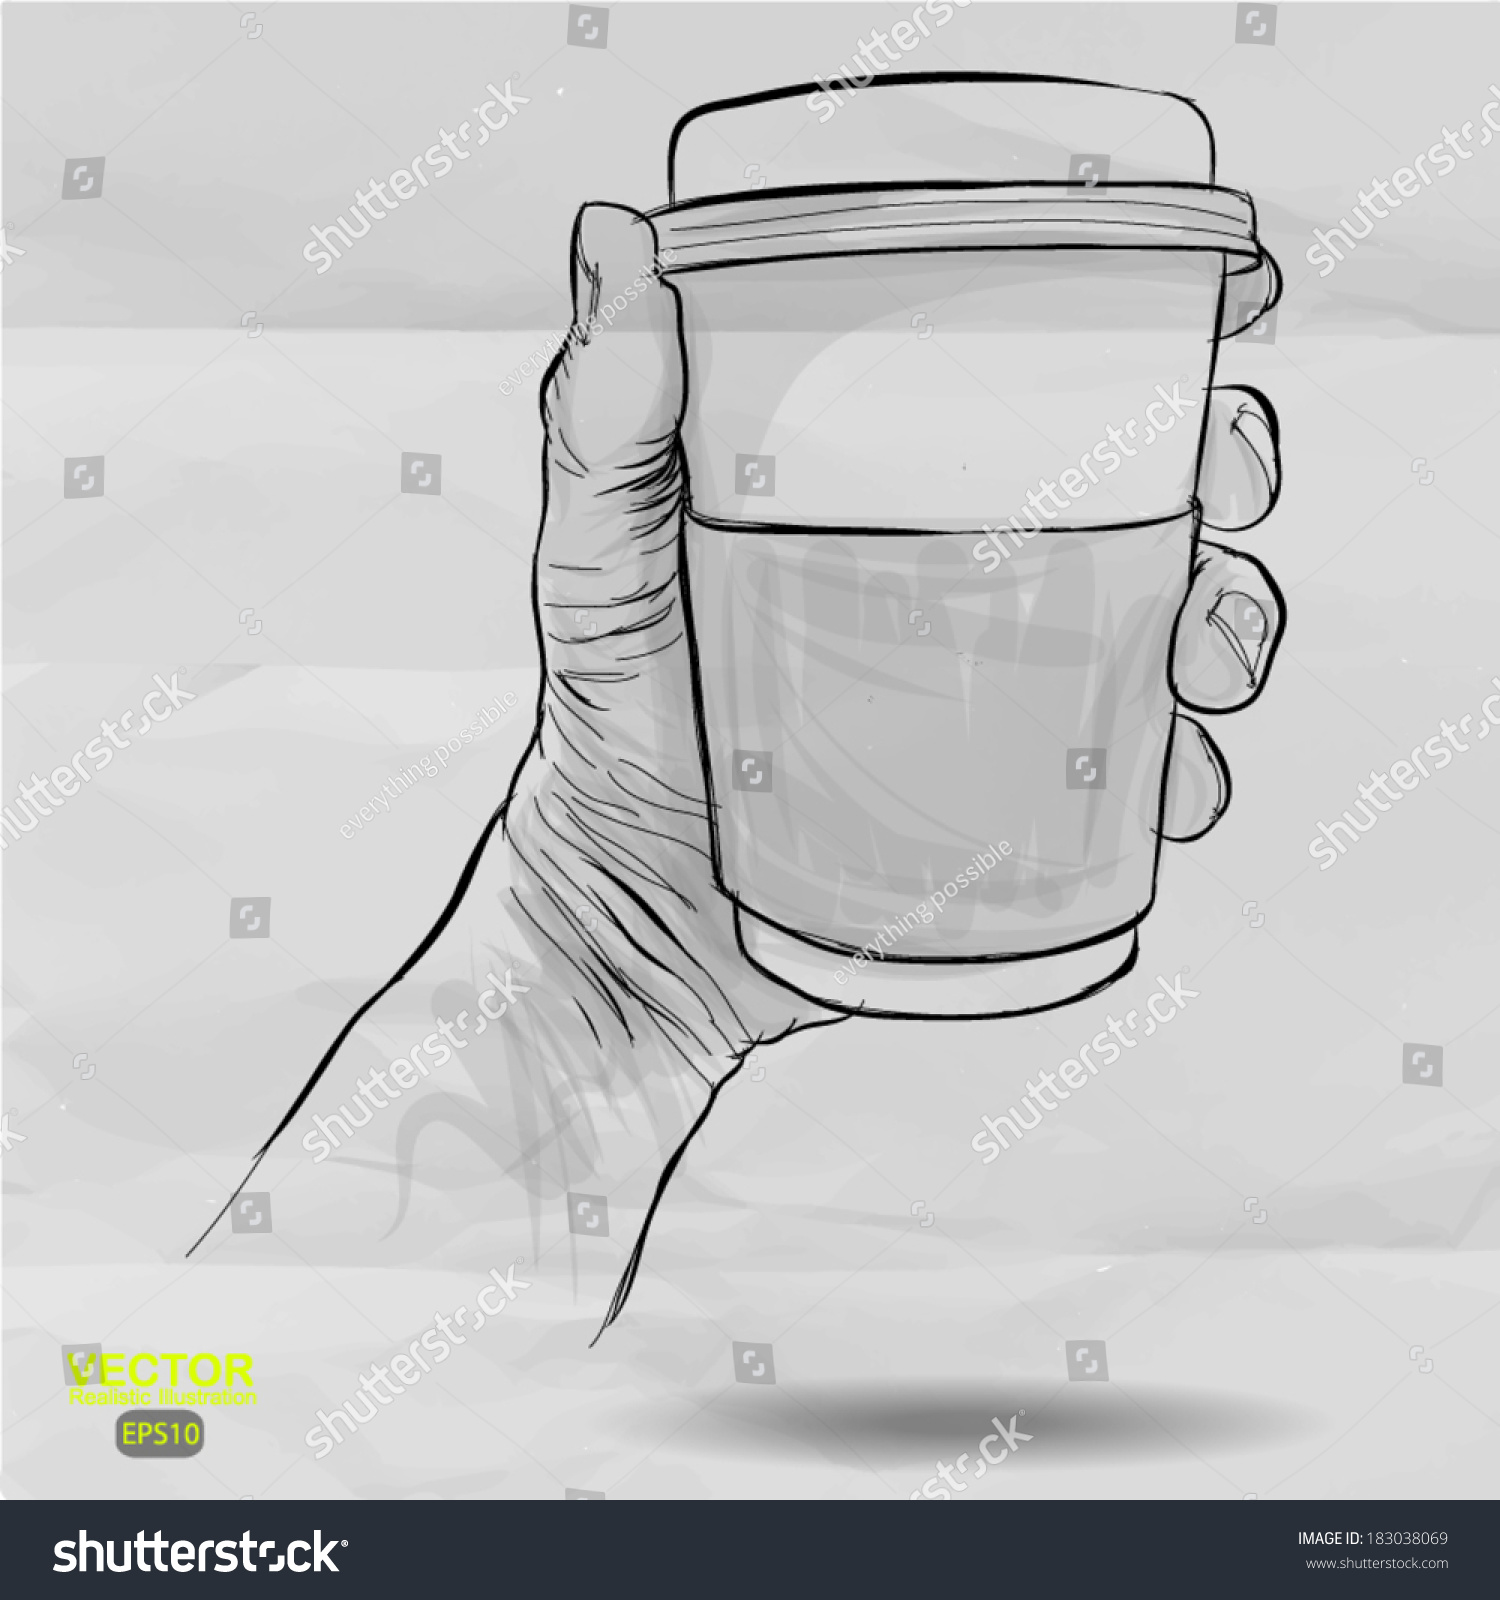 Hand Drawn Hands Holding Cup Of Coffee On Crumpled Paper